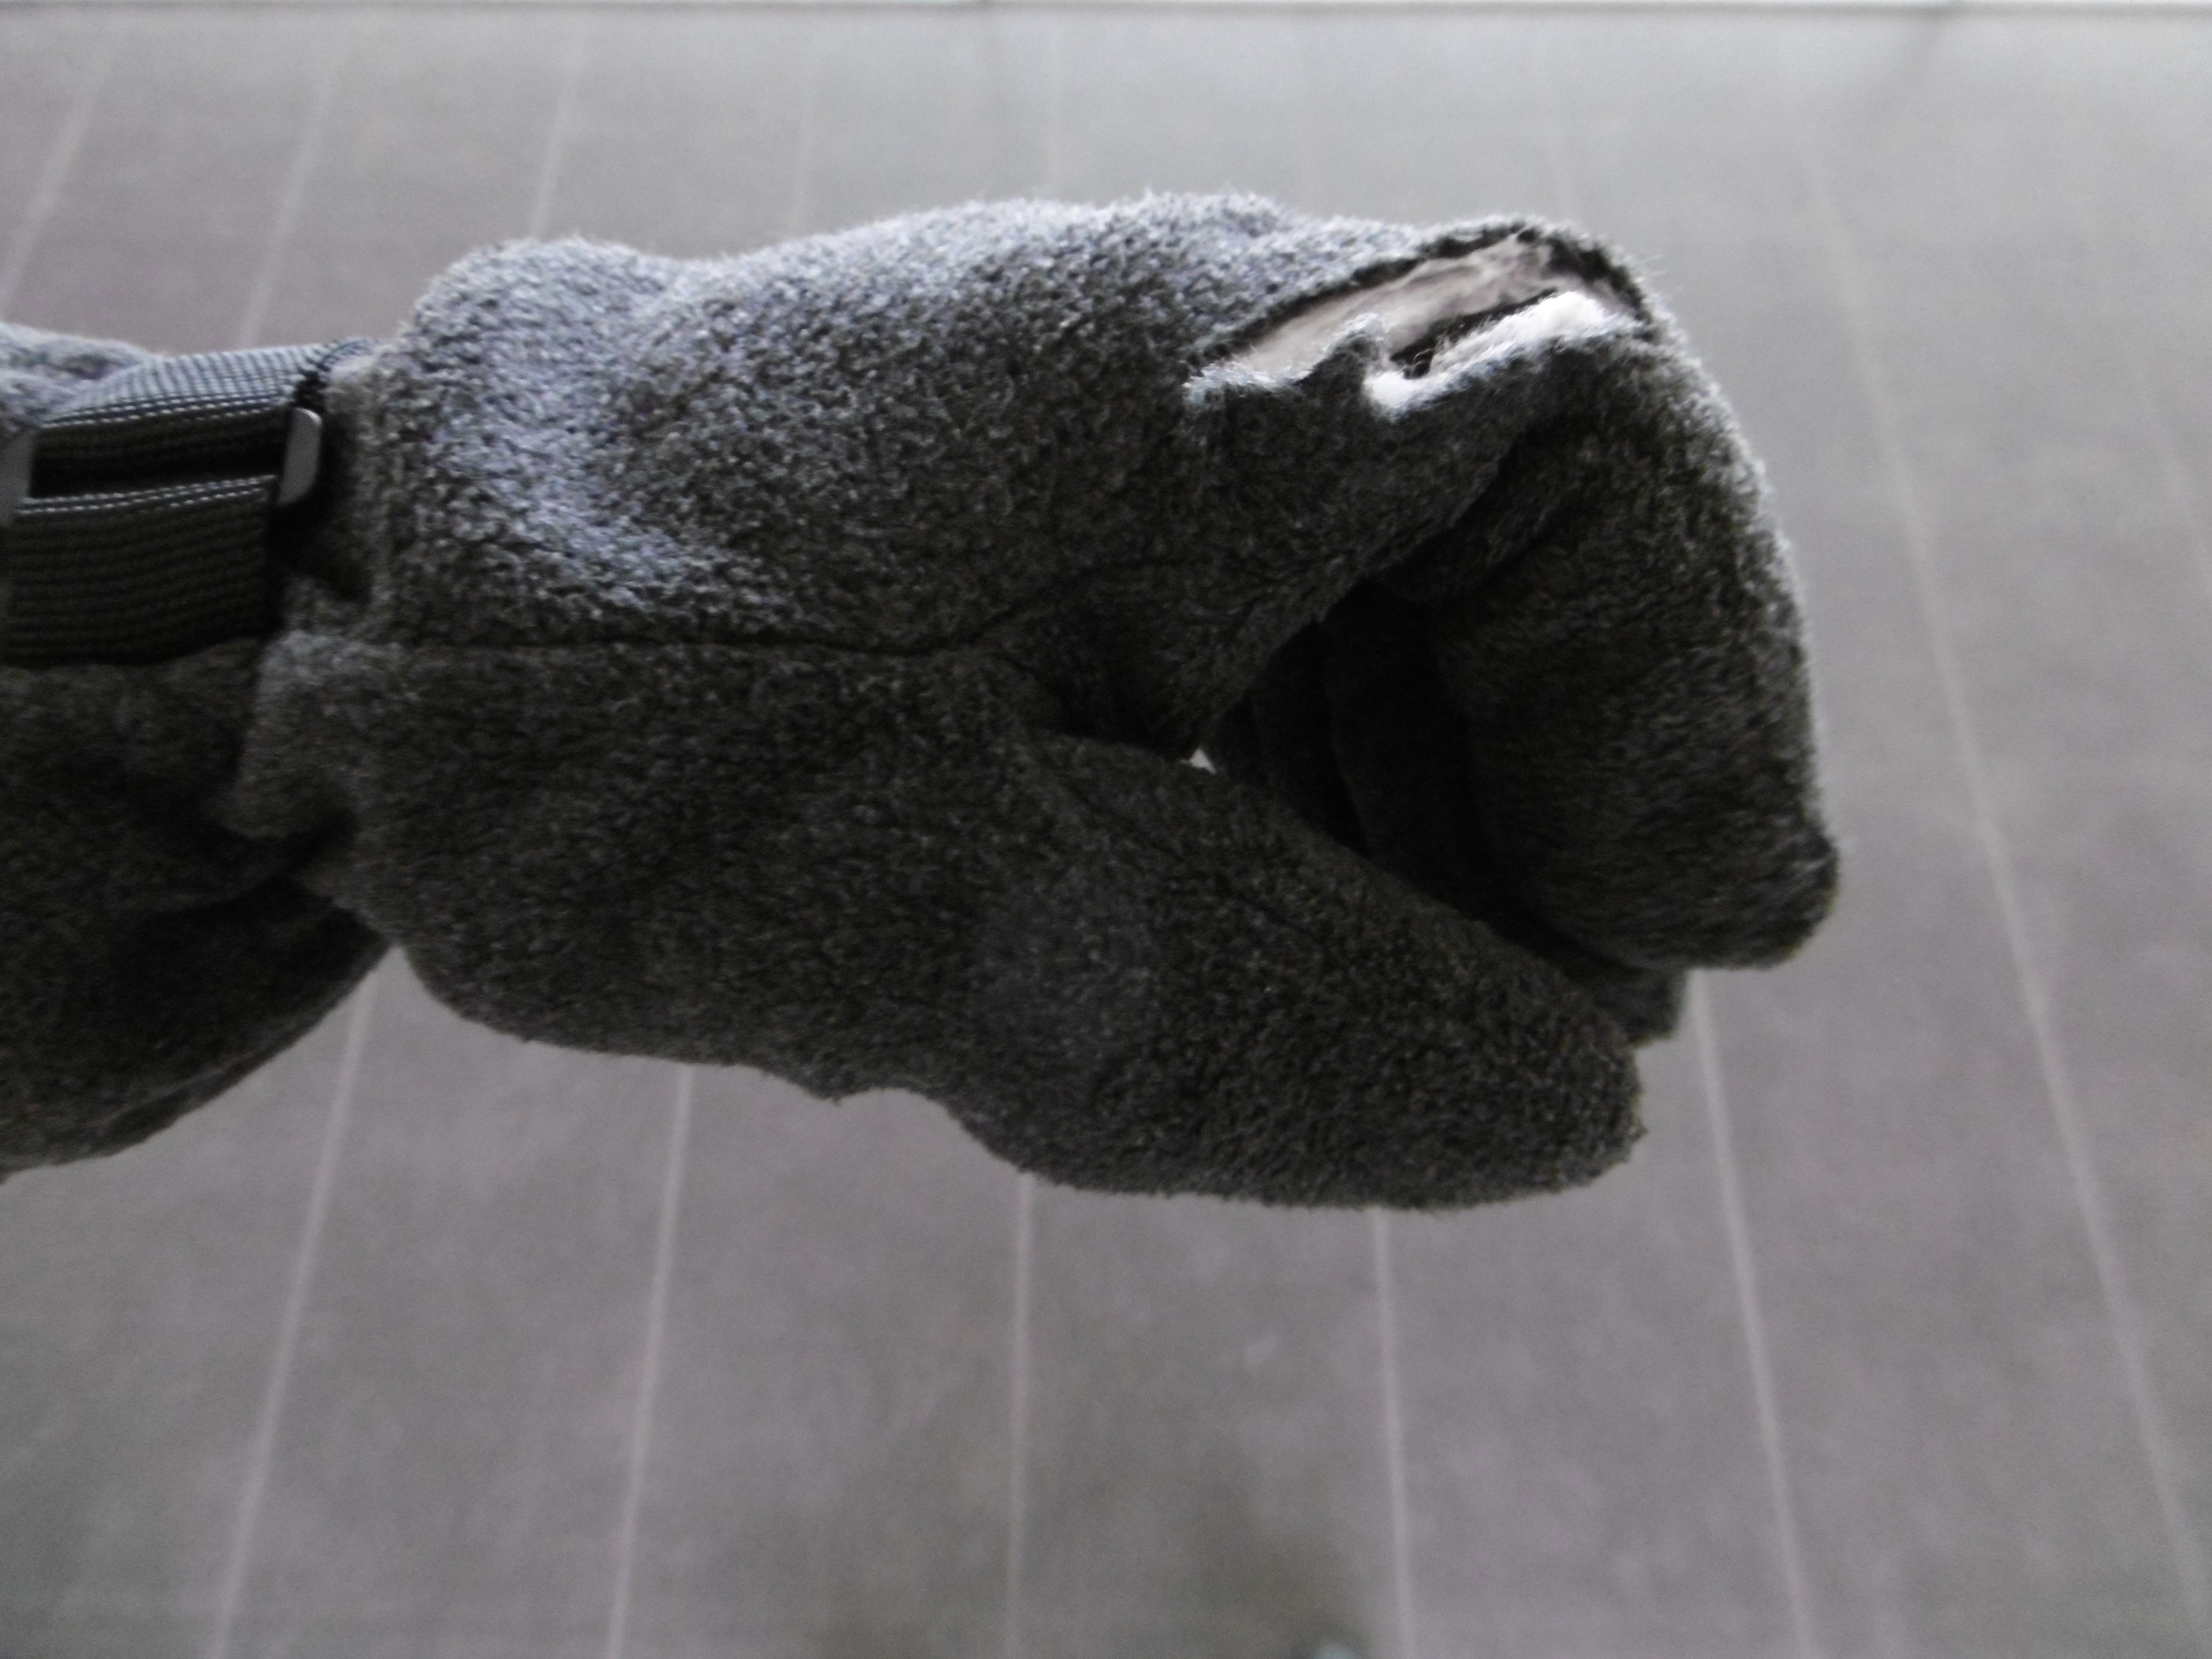 Fleece gloves with a cut through one finger from a cyclist ramming into the wearer